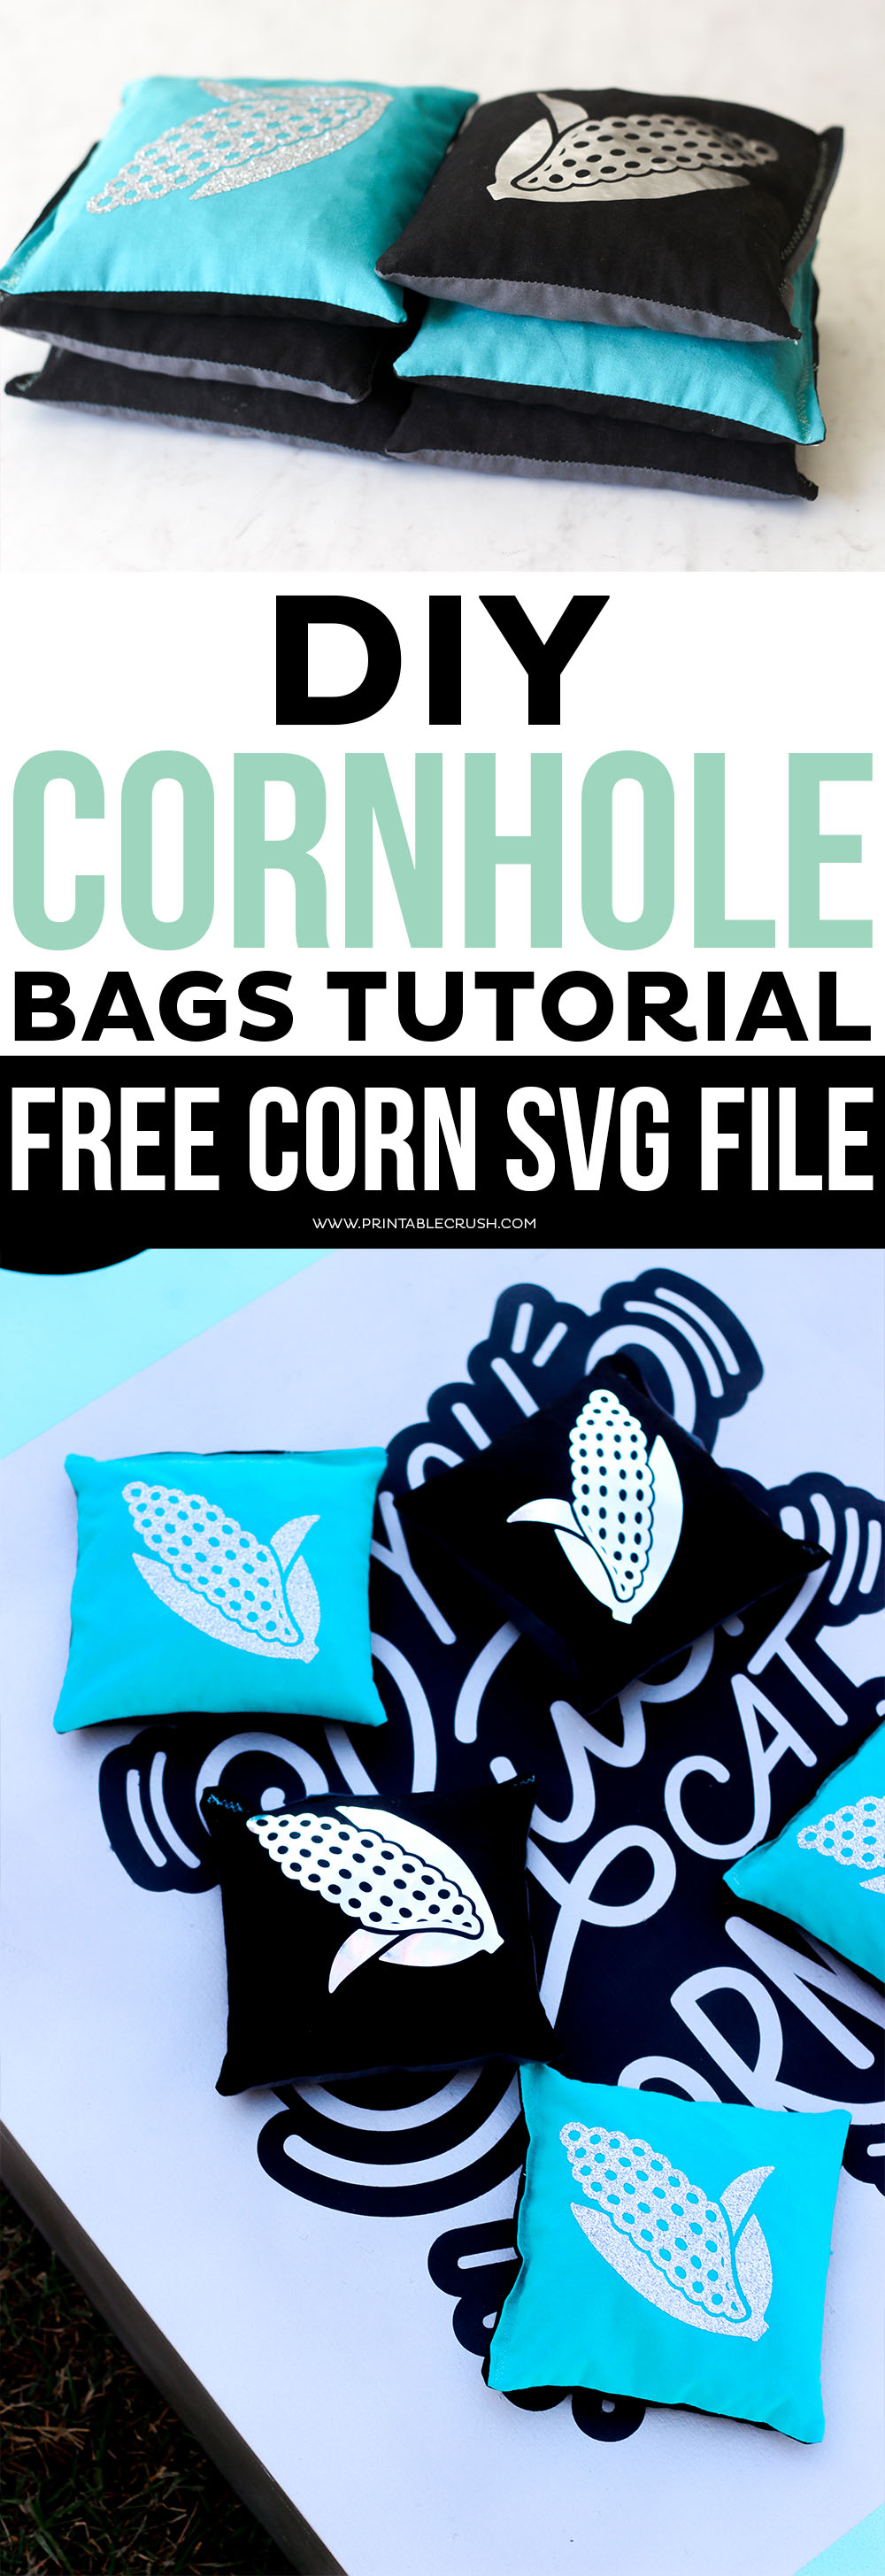 This DIY Cornhole Bags Tutorial will show you how to cut out the pattern with the Cricut Maker, and personalize them with the EasyPress!